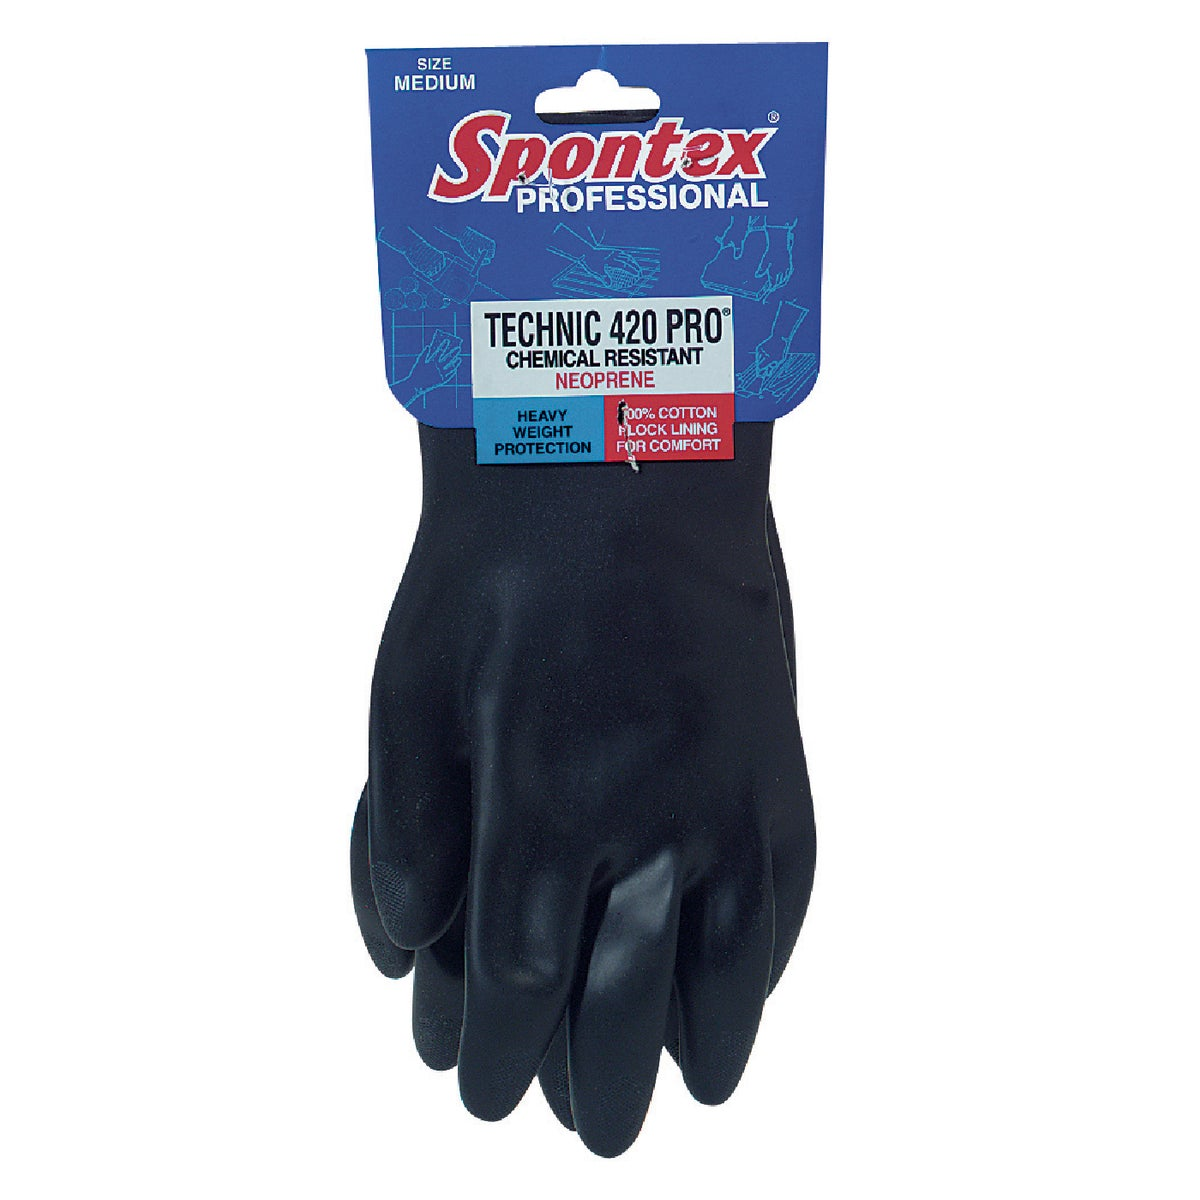 X-LARGE RUBBER GLOVES - 33547 by Lehigh Spontex